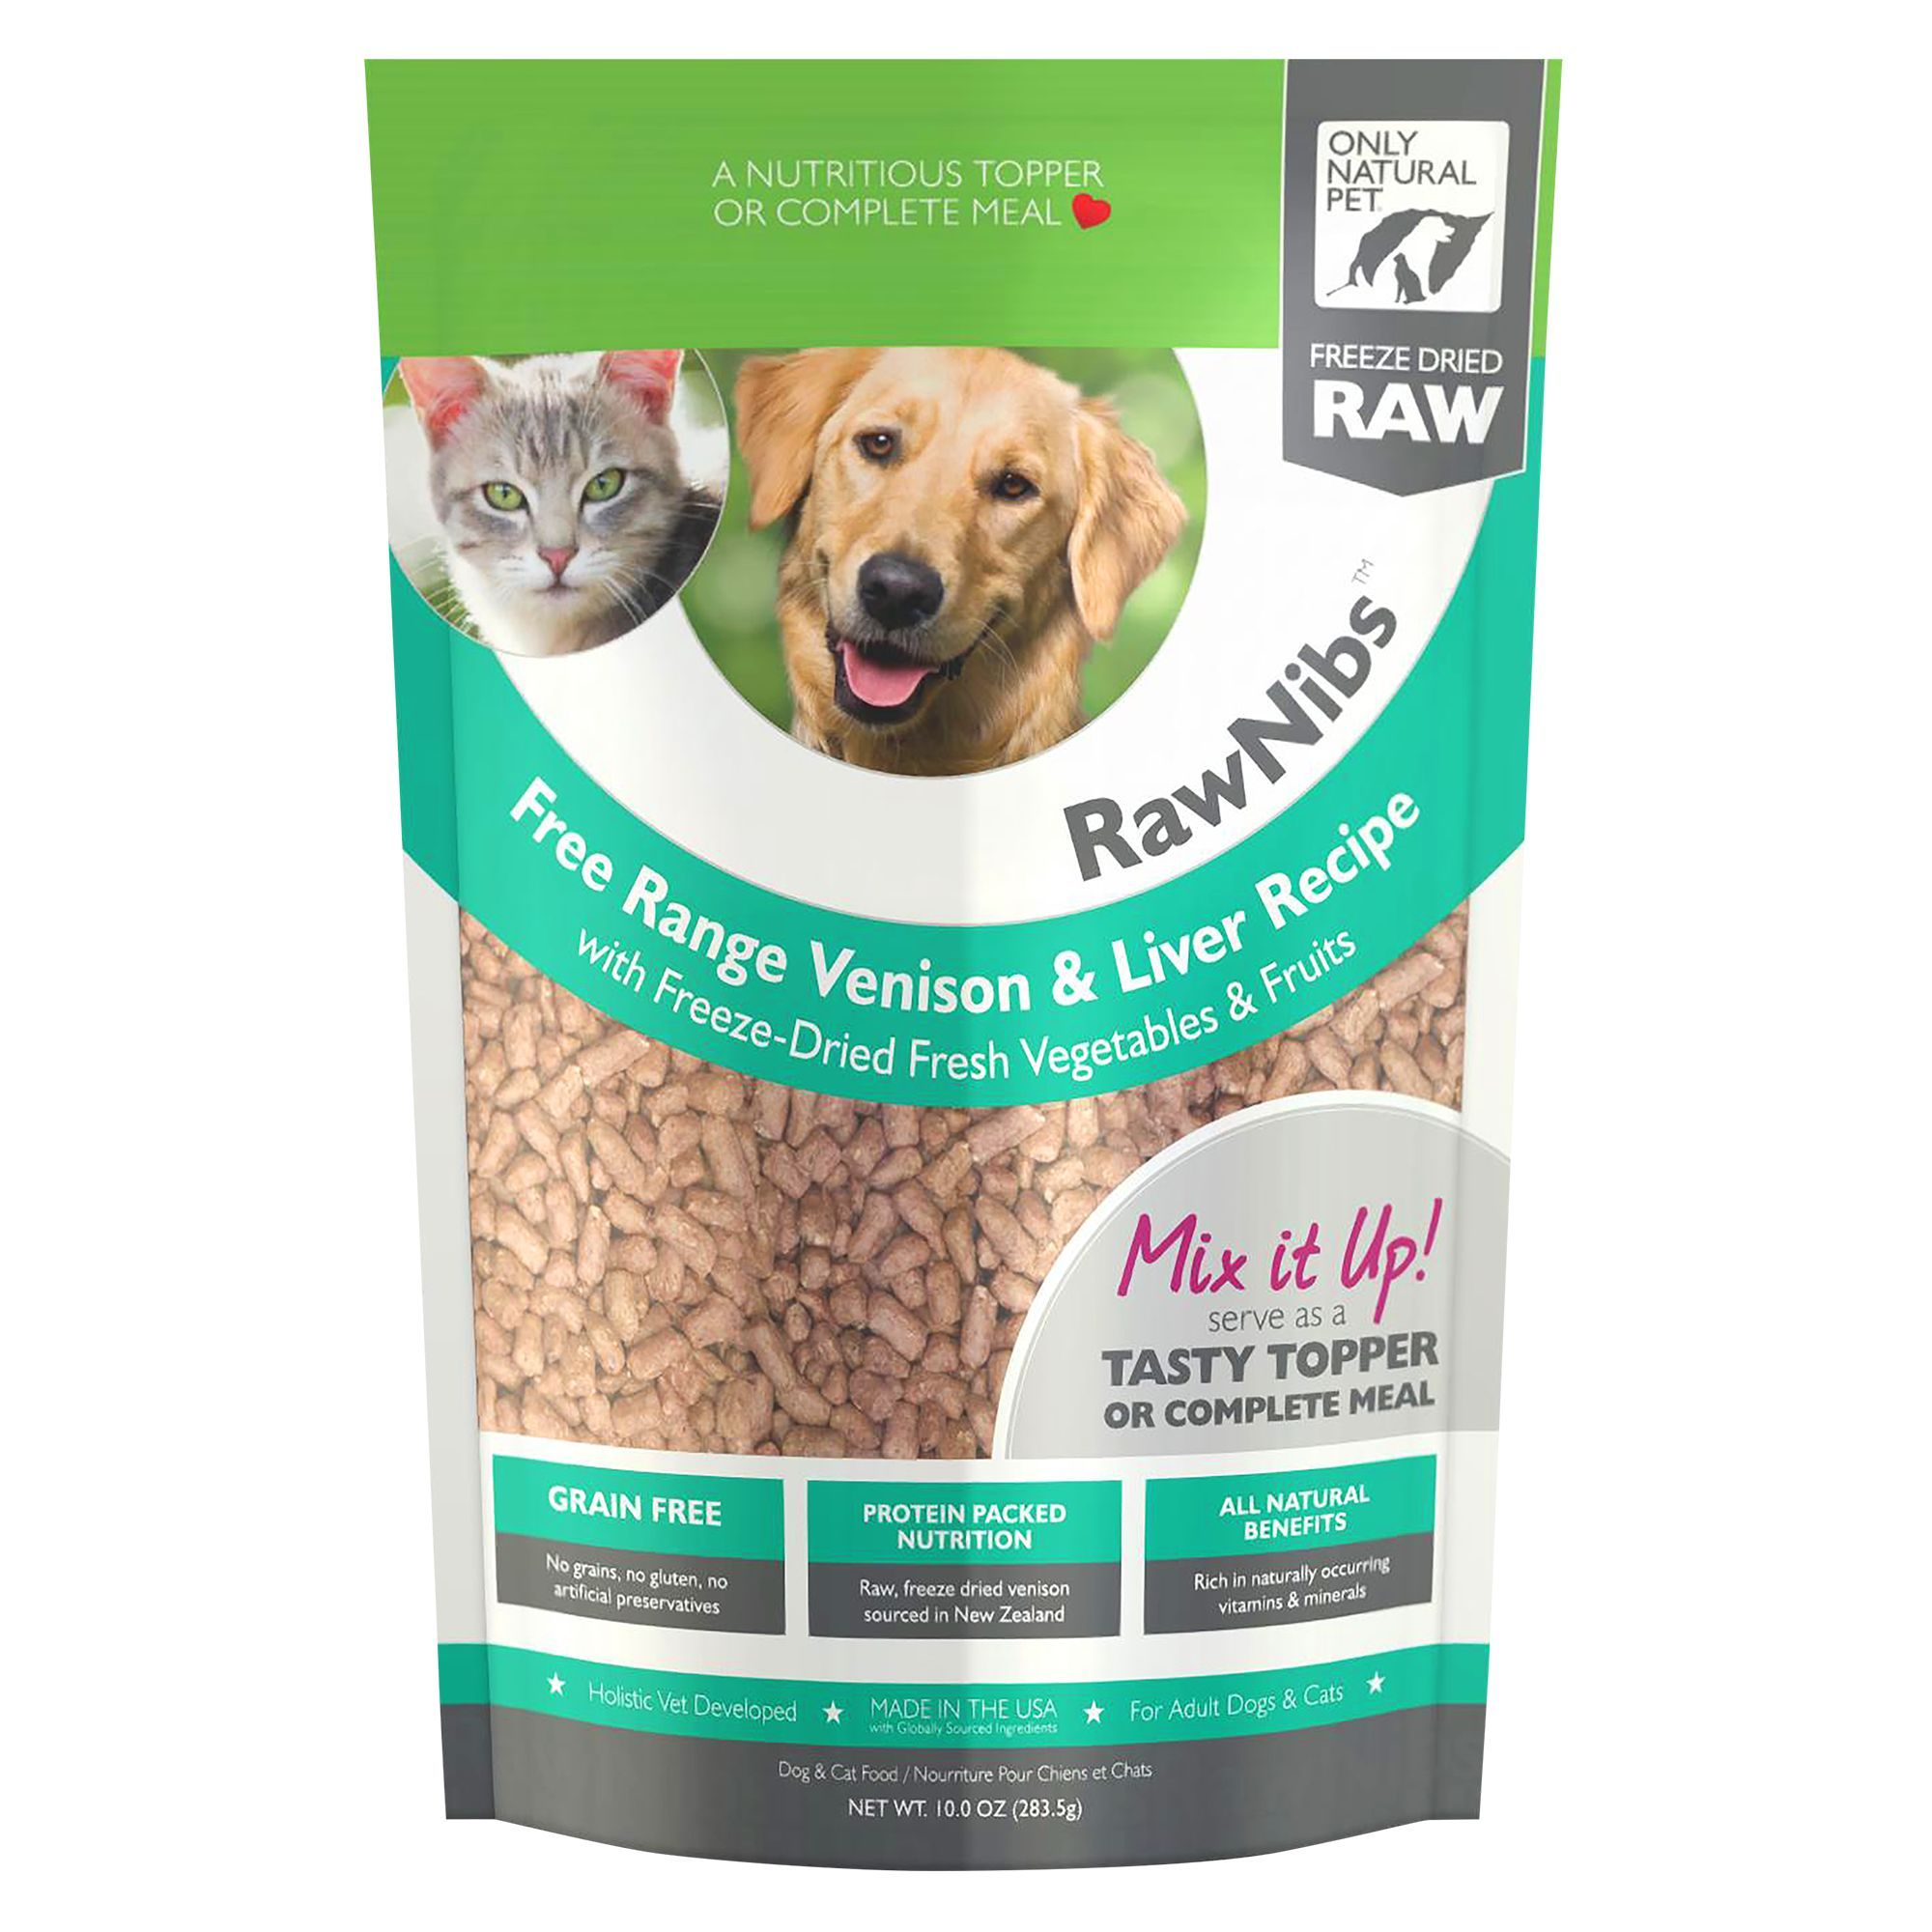 Only Natural Pet RawNibs Pet Food Freeze Dried Raw